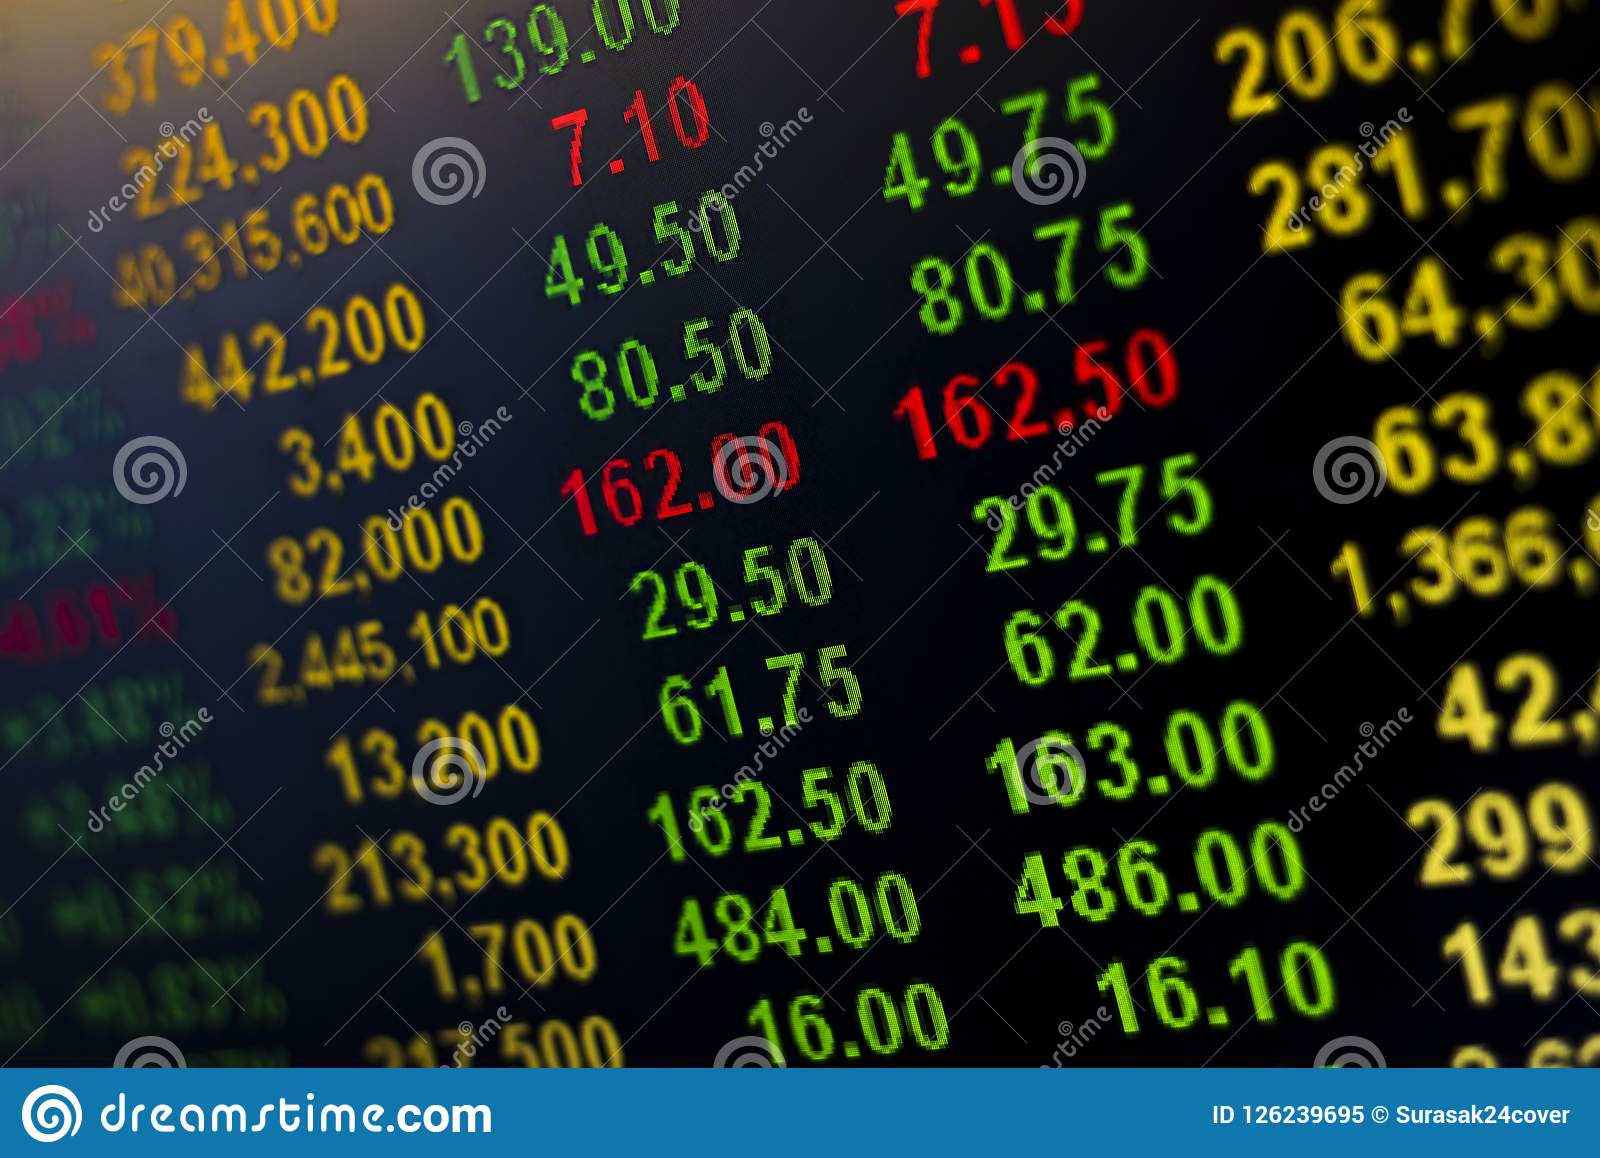 Global stock market ideas Numbers will tell you to sign the financial statement.